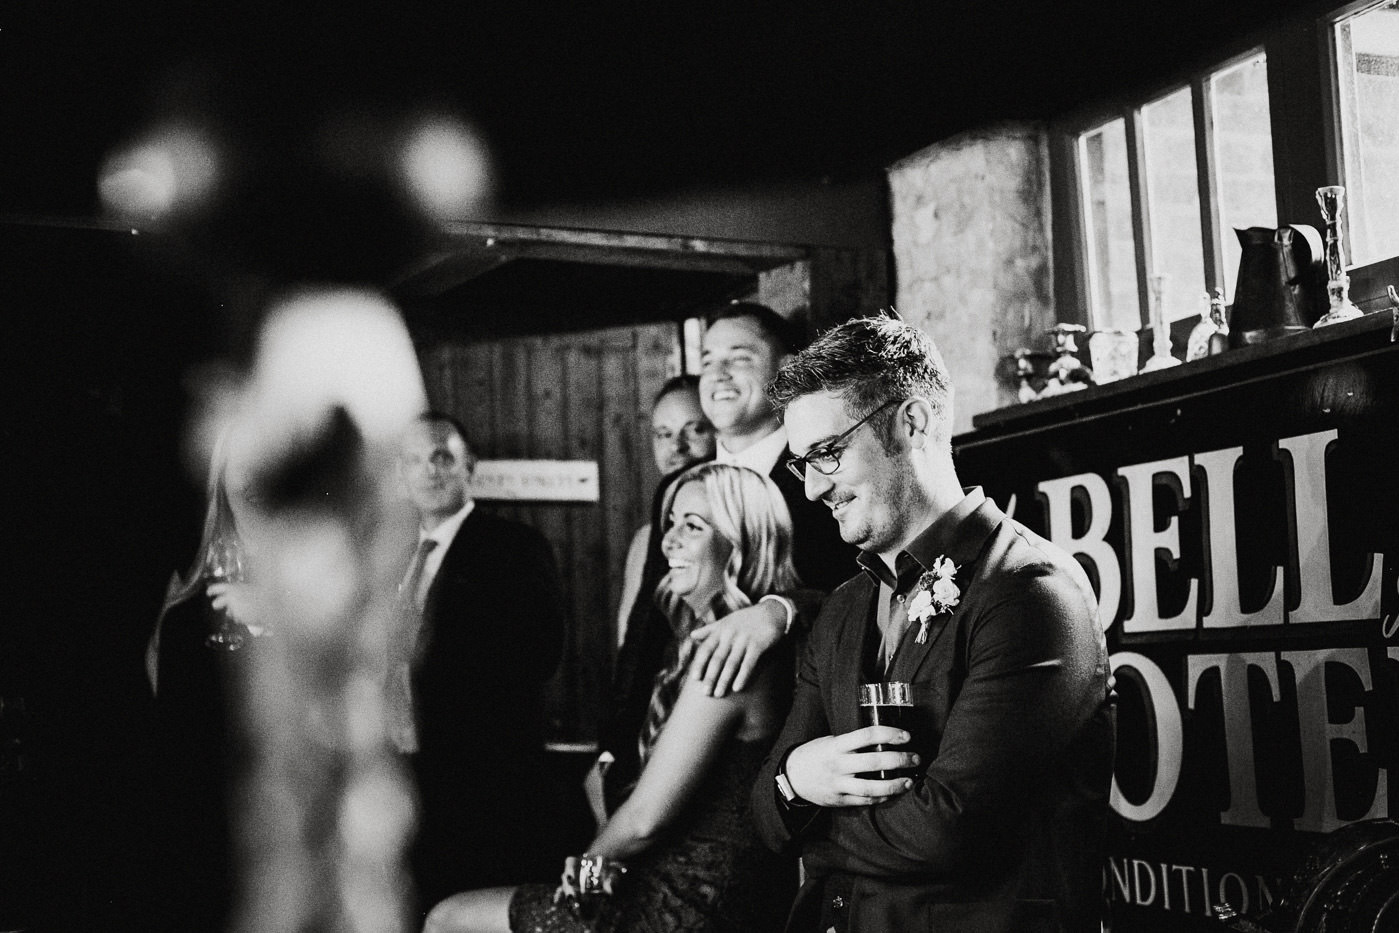 The-bell-in-Ticehurst-pub-kent-wedding-photographer-London-Epic-Love-Story-076